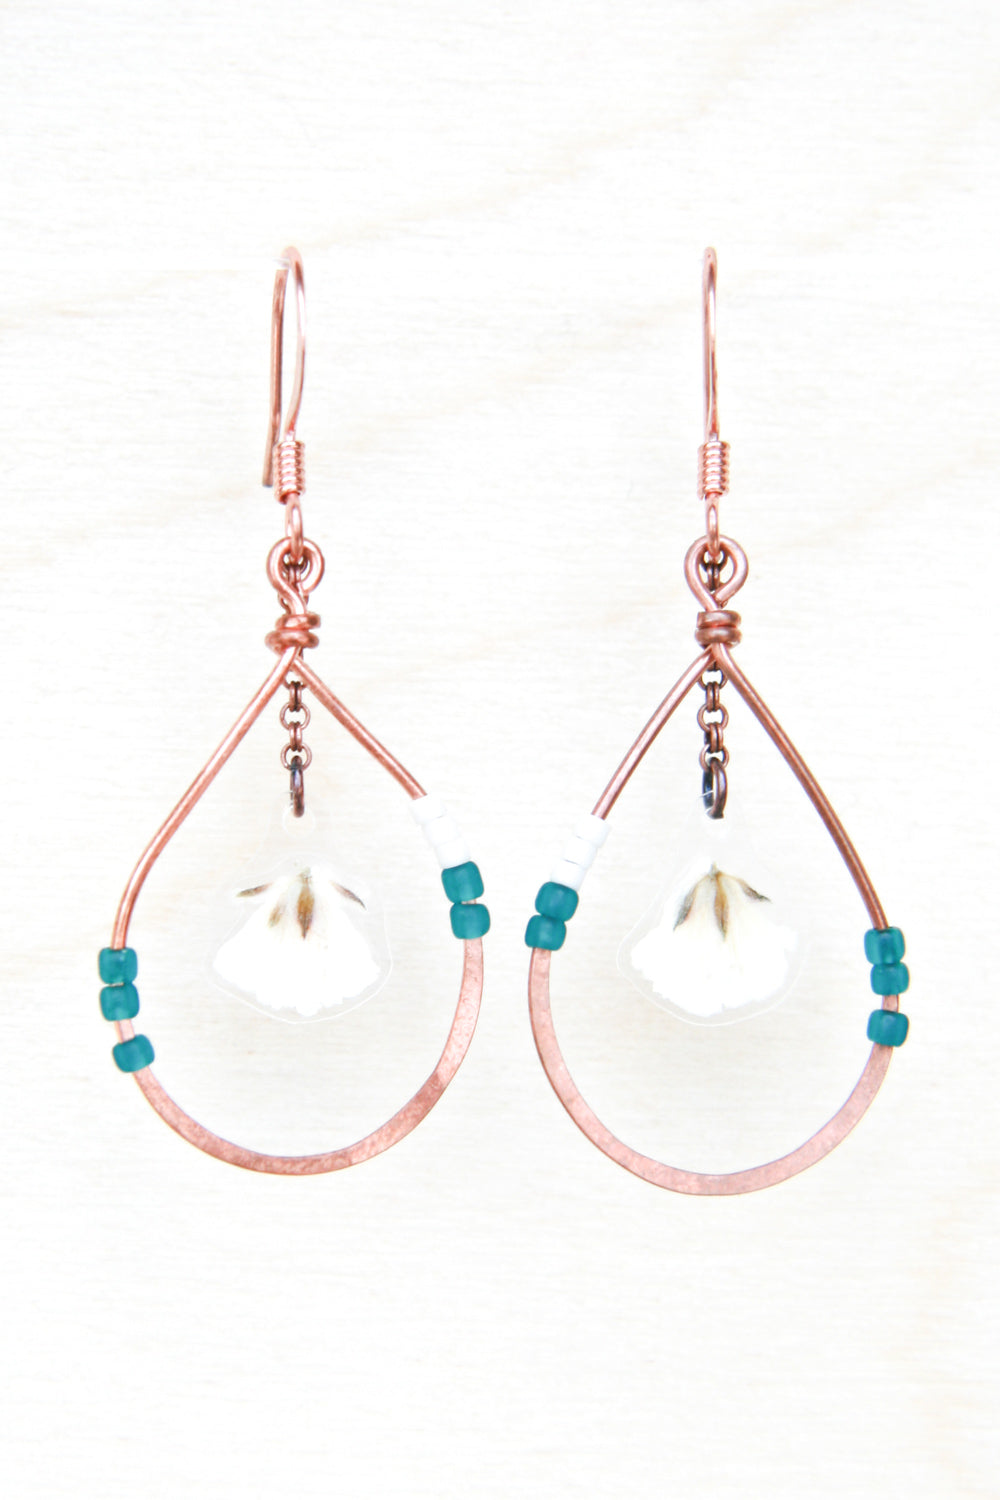 Baby's Breath Pressed Flower Petal Earrings with Copper Teardrop Hoops and Teal Glass Beads